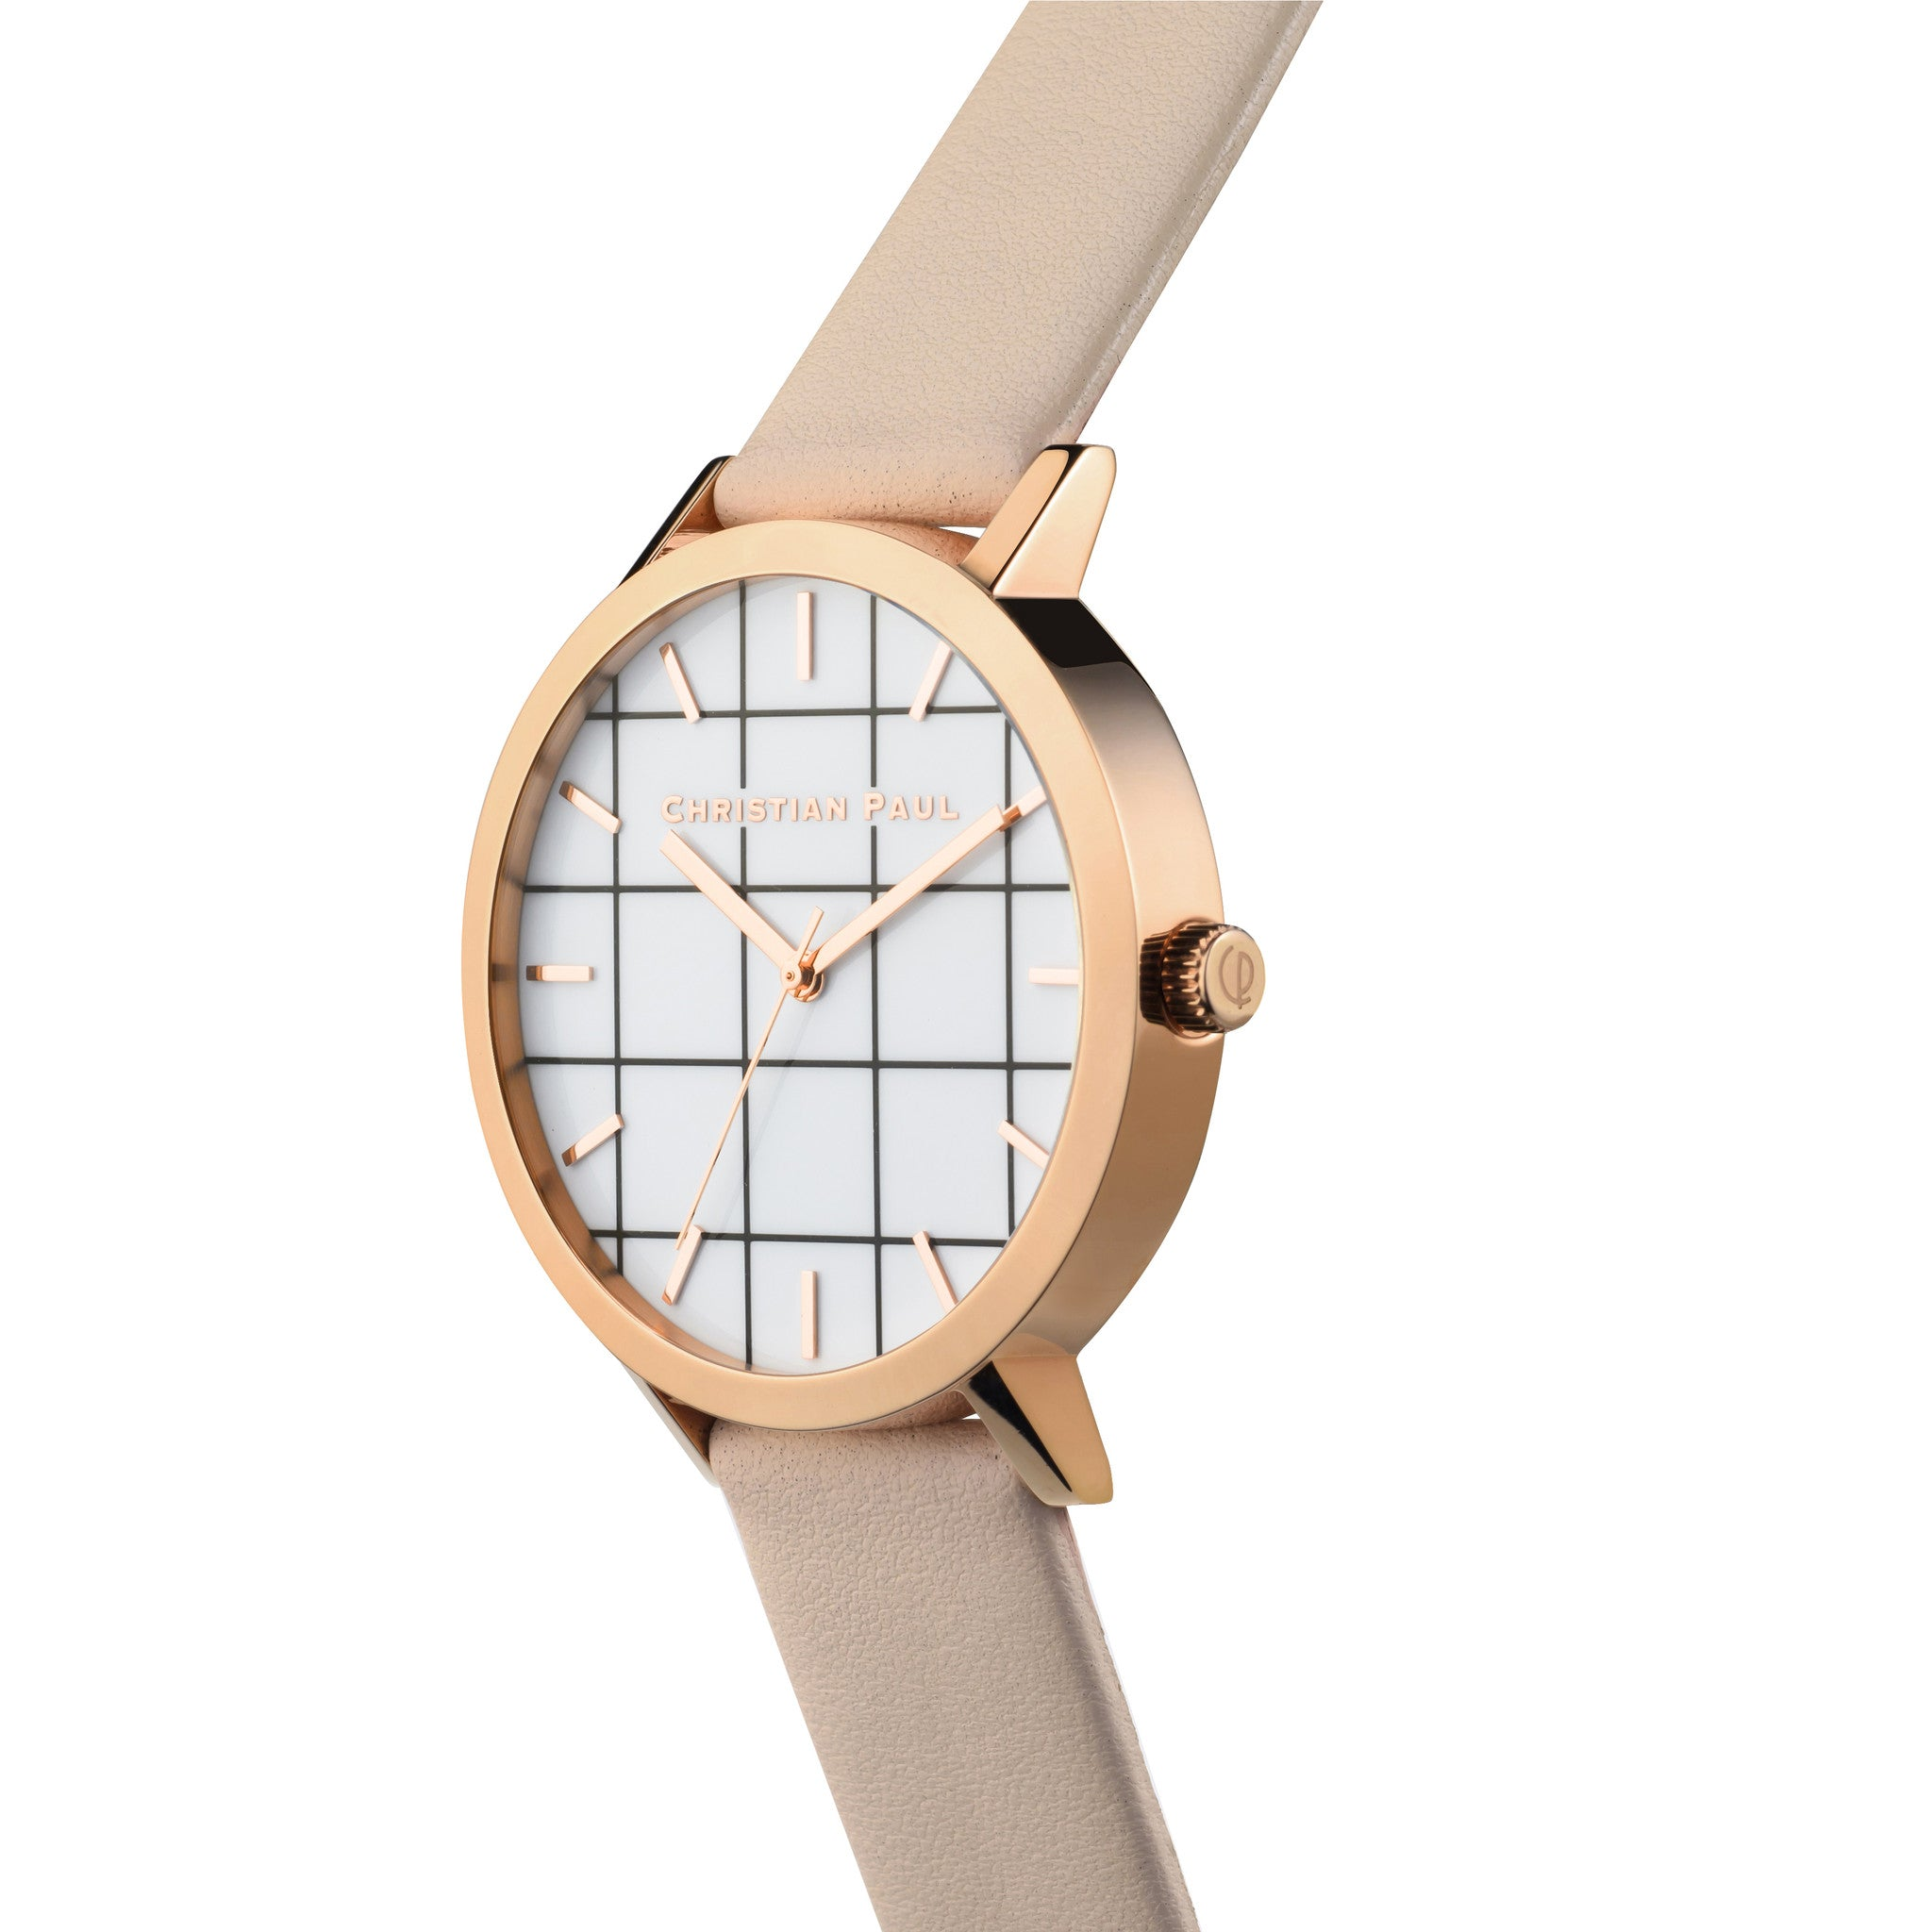 mei products peach watches roscani ling